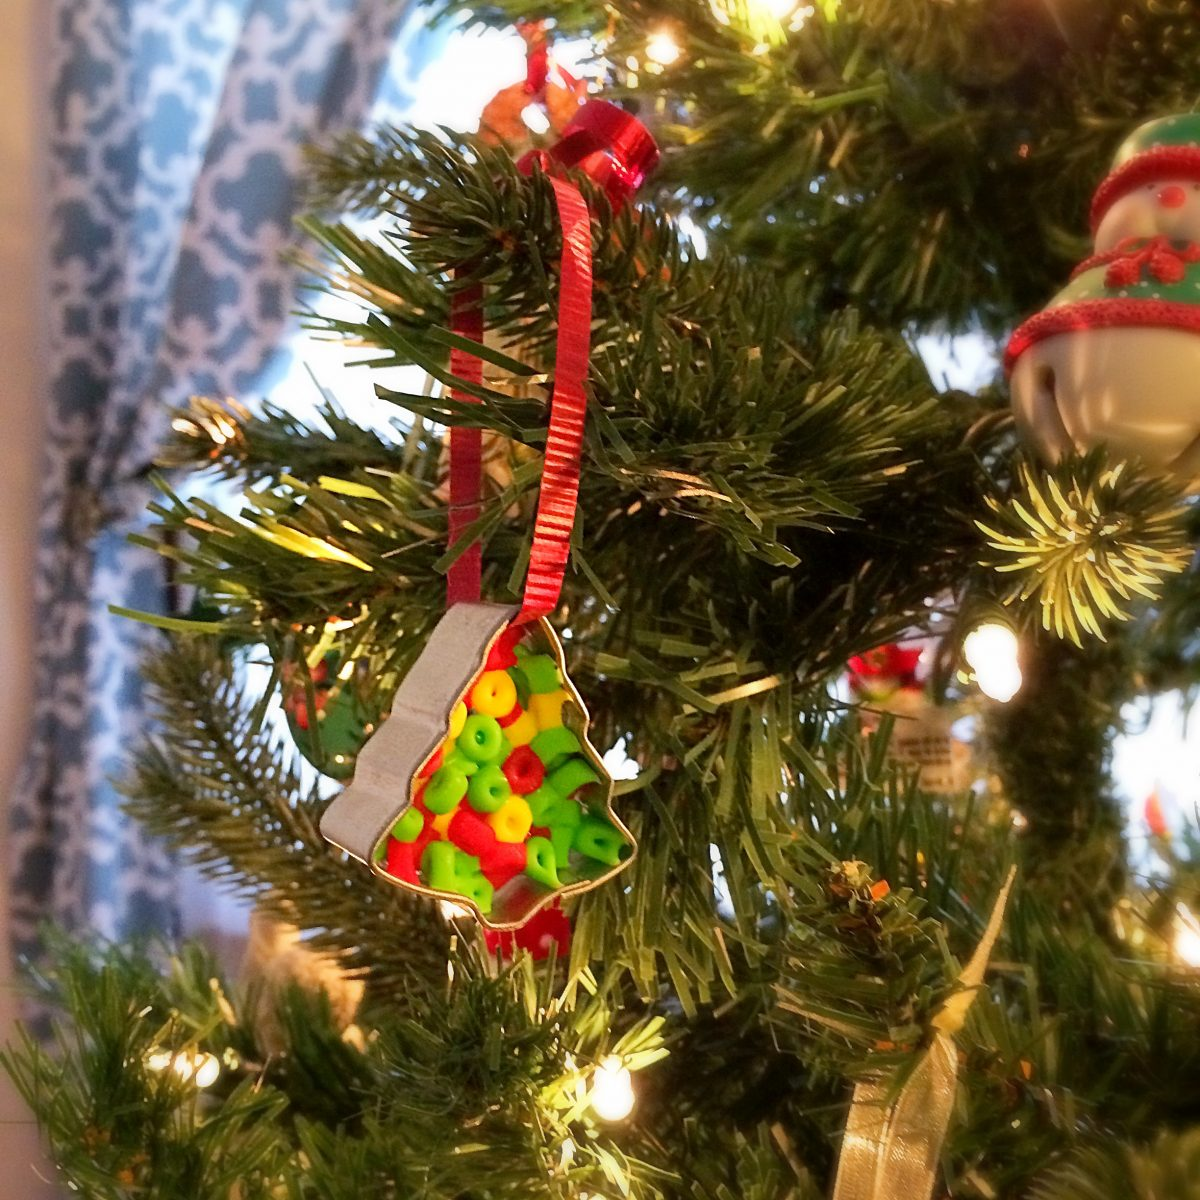 Toddler Christmas Ornament. A fun gift for your child to craft and give at Christmas.